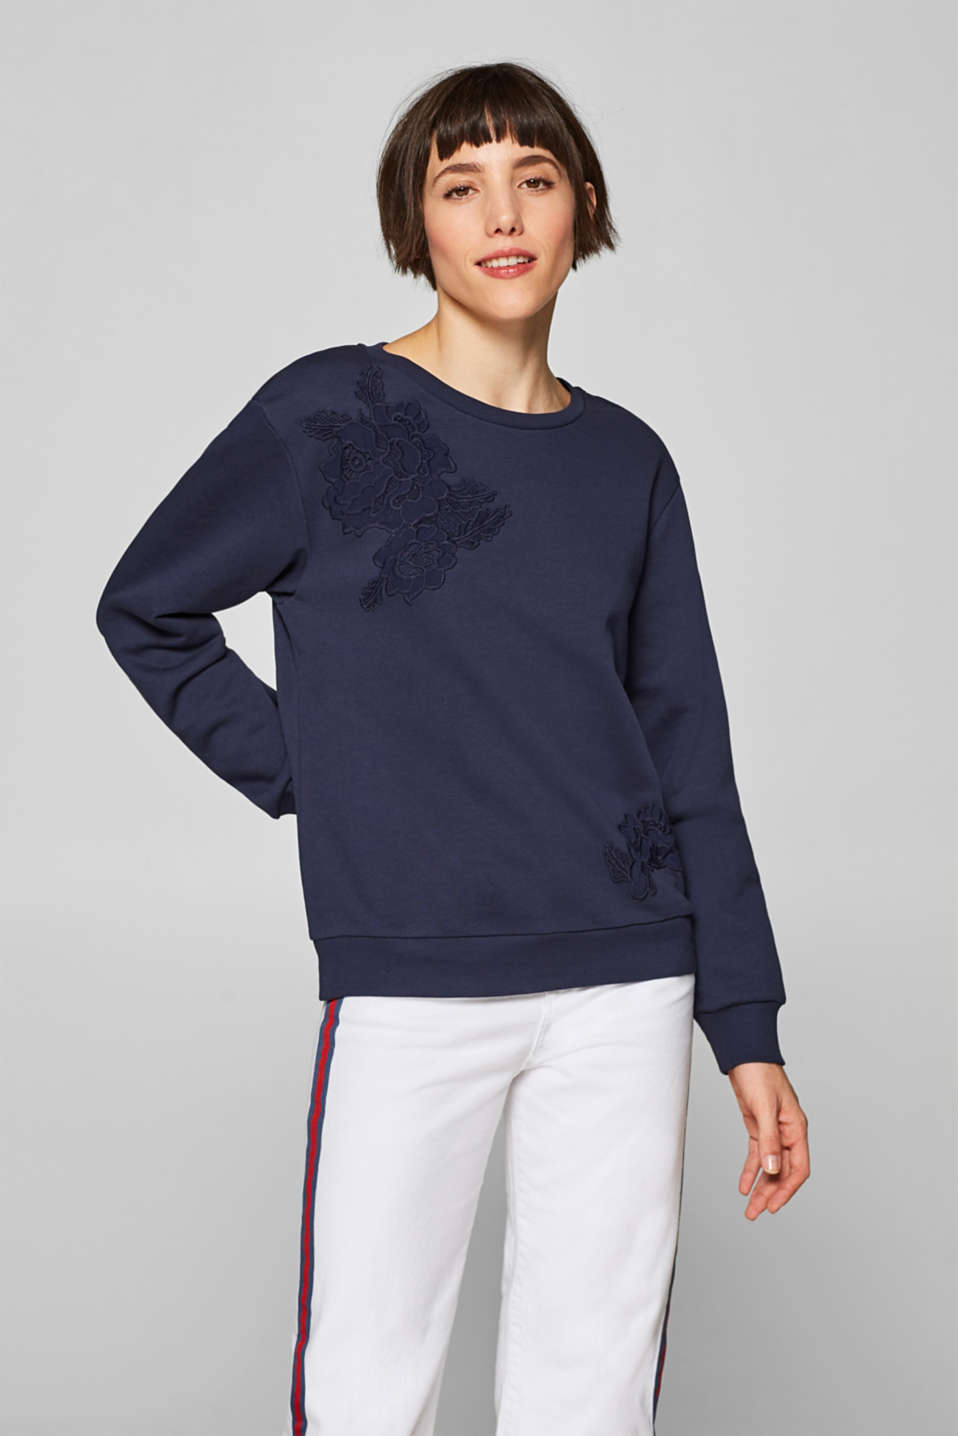 Esprit - Sweatshirt with appliquéd flowers